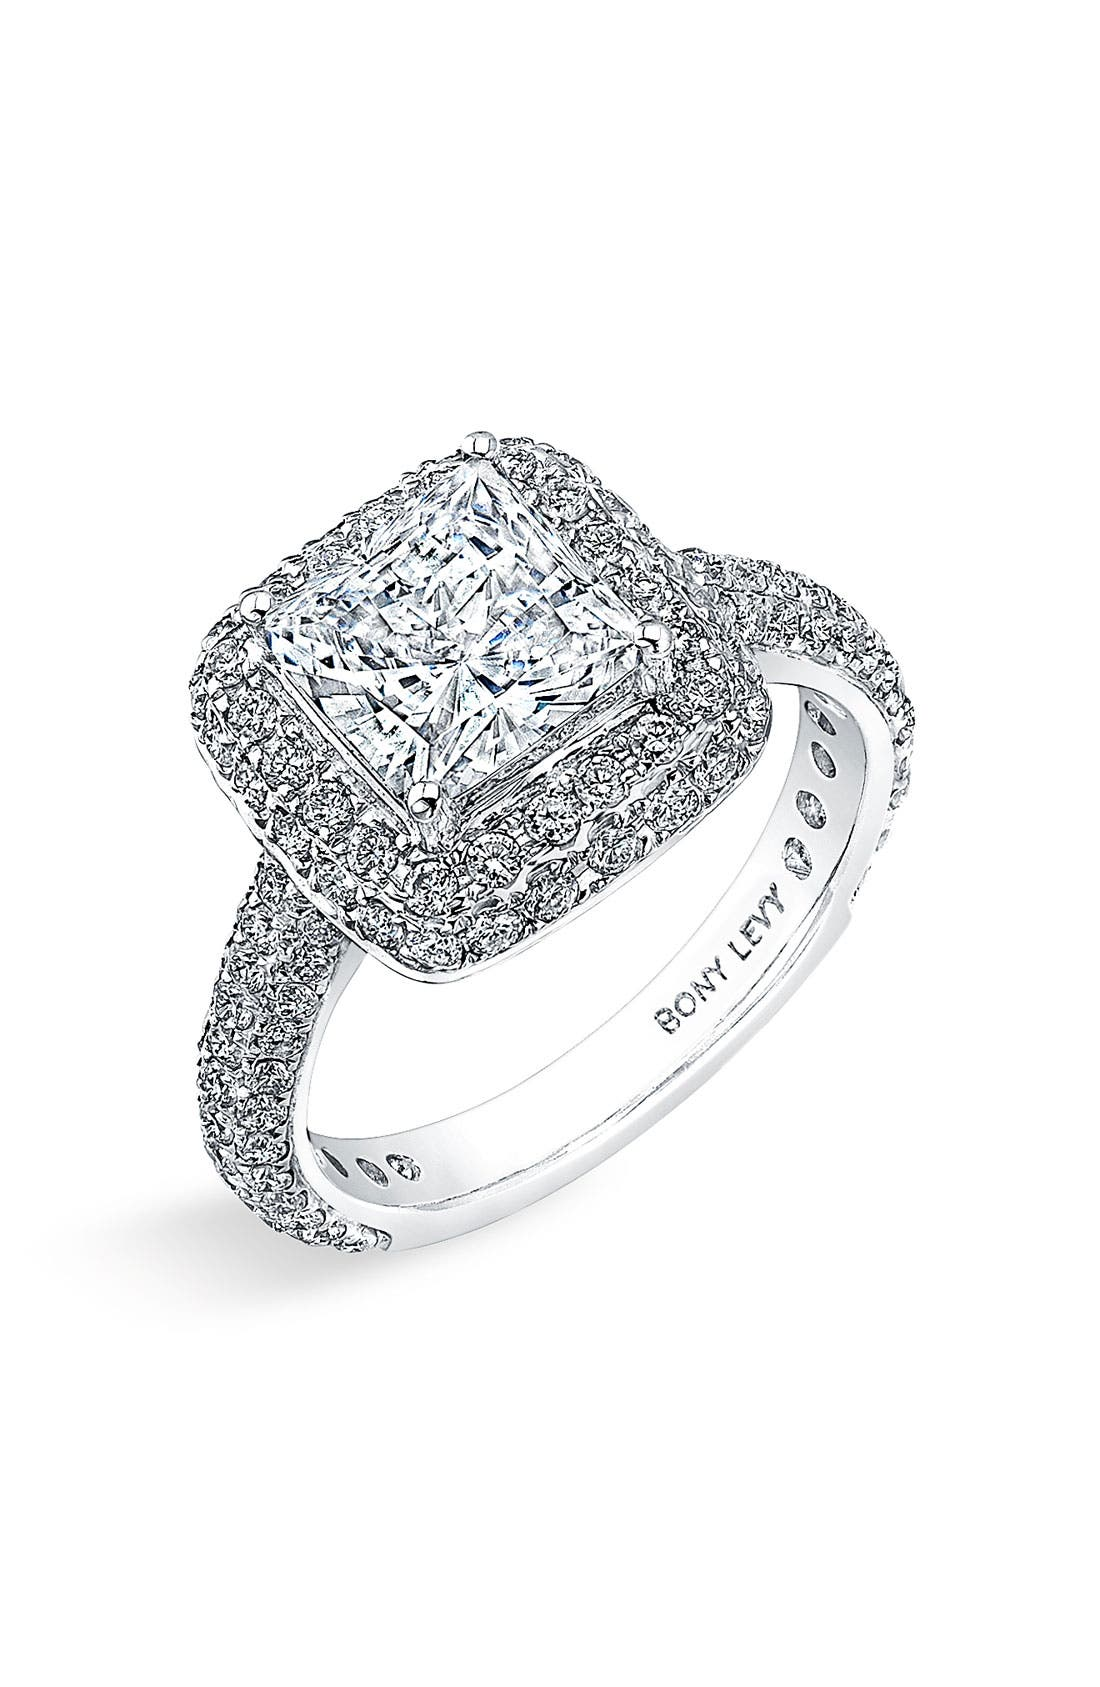 Alternate Image 1 Selected - Bony Levy Multi-Row Micro Pavé Diamond Engagement Ring Setting (Nordstrom Exclusive)